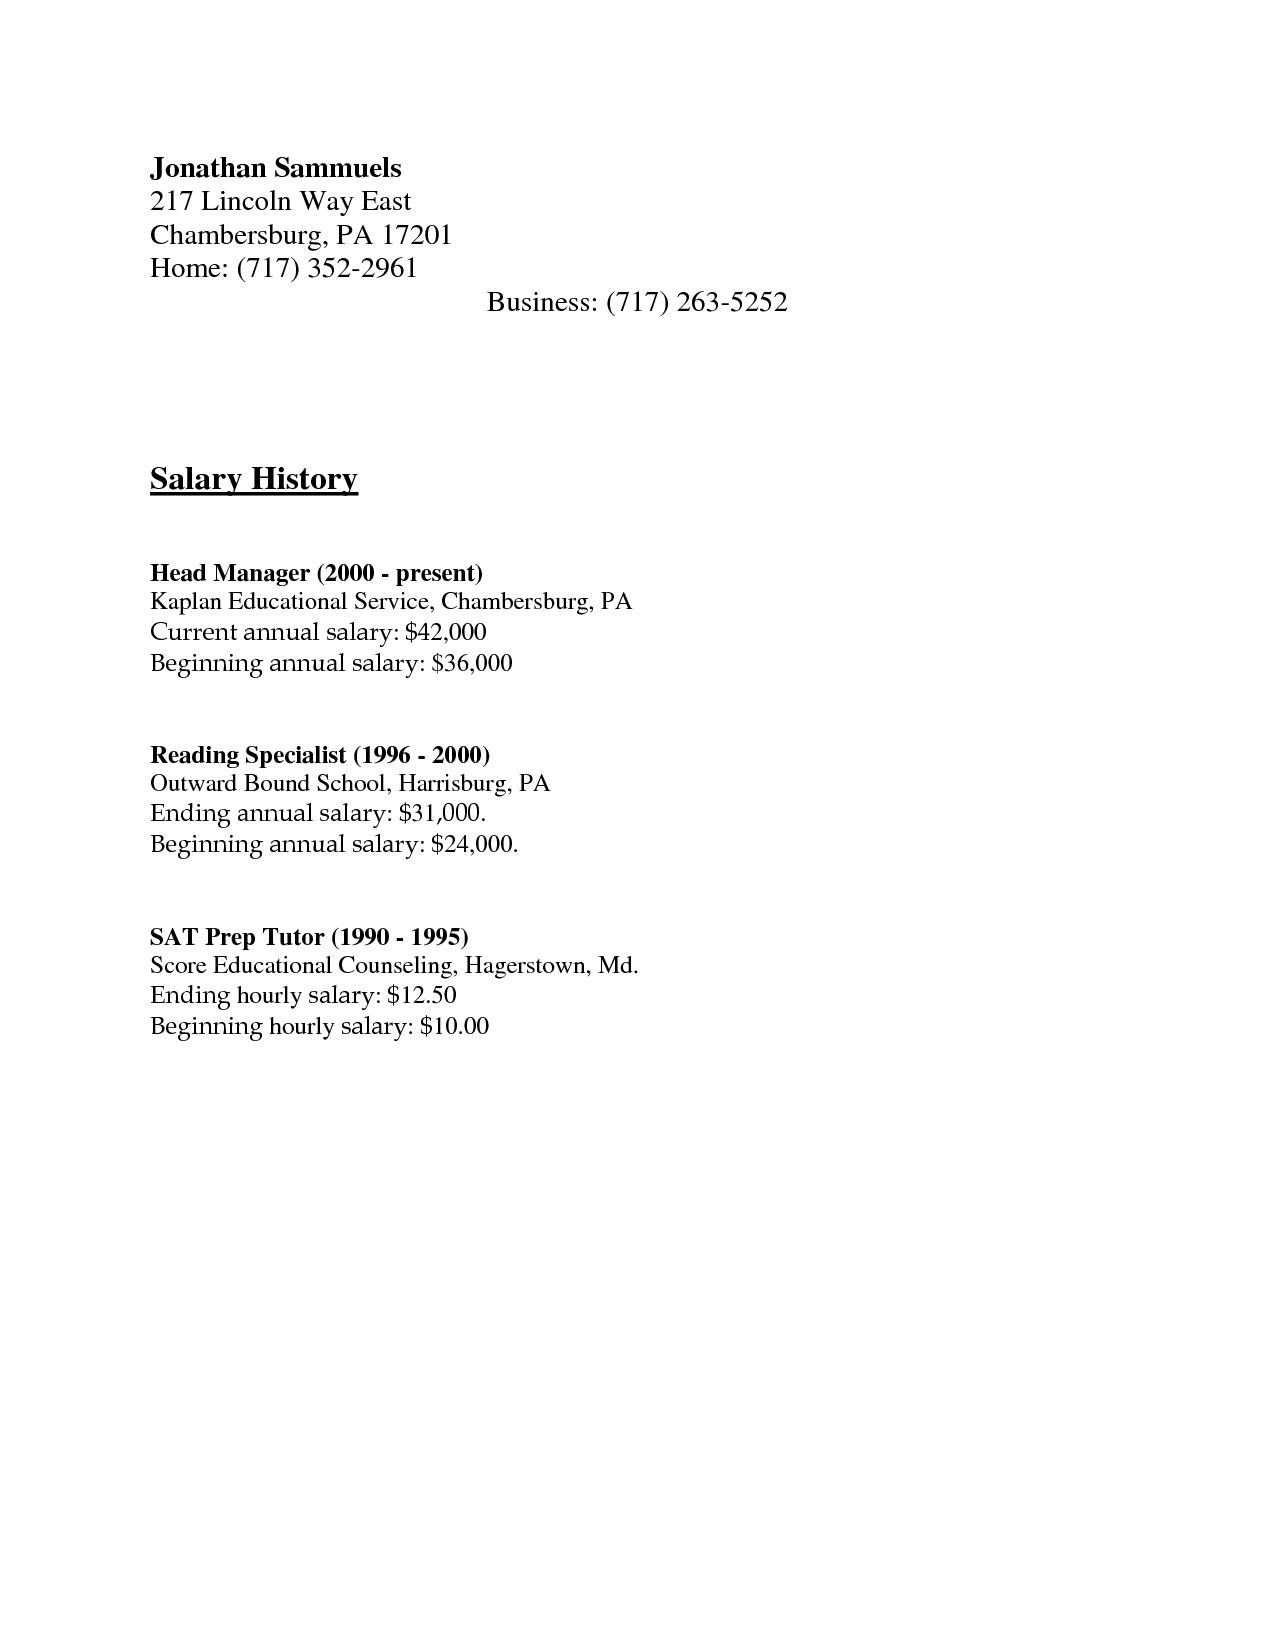 e2fbe9540c065a021ebd34762f41f1f3 Salary History Format Resume on how put my, where do you put, where put desired, how write expected, history template, how attach expected, what type for, templates that include, hours included,